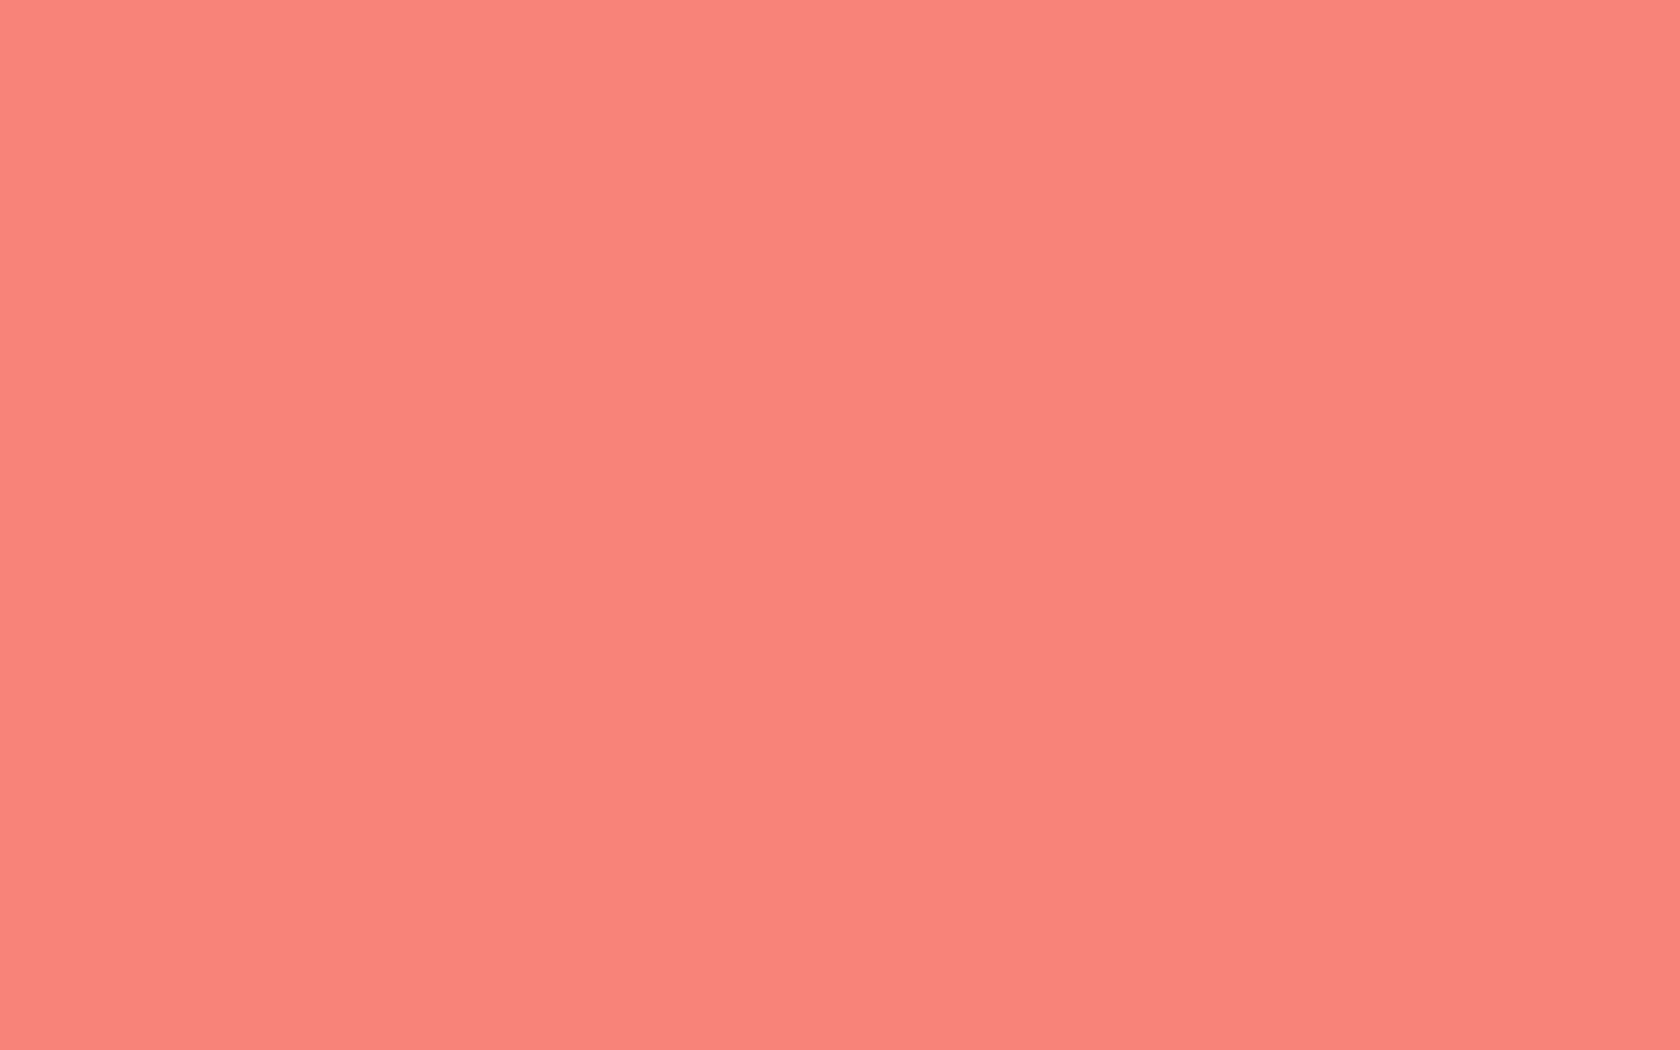 1680x1050 Congo Pink Solid Color Background